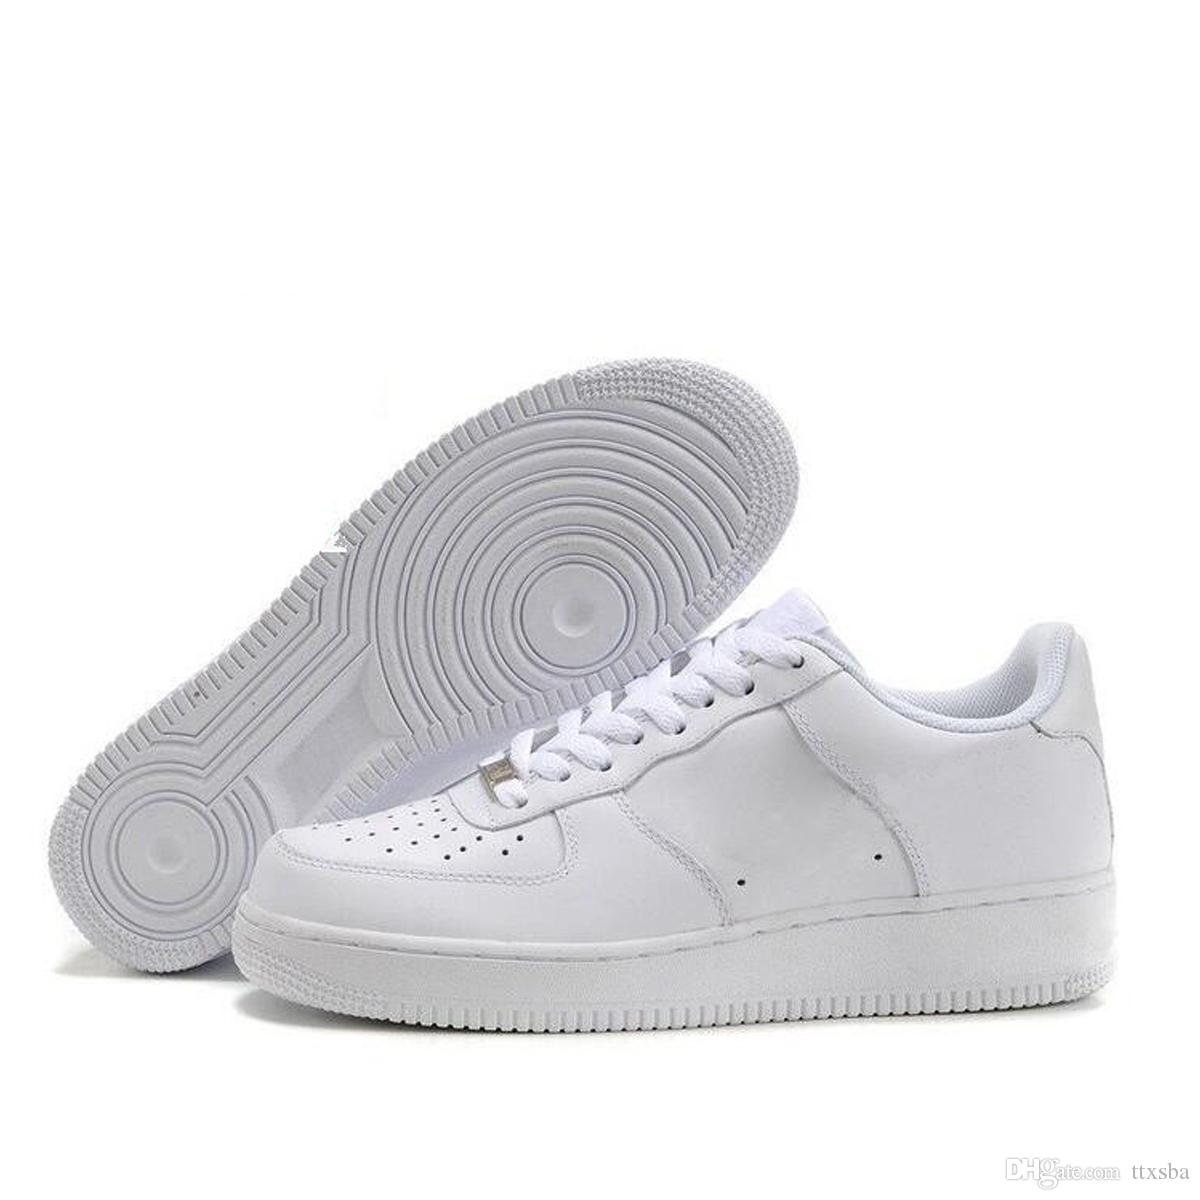 descuento Mujer Nike Air force 1 low zapatillas negras